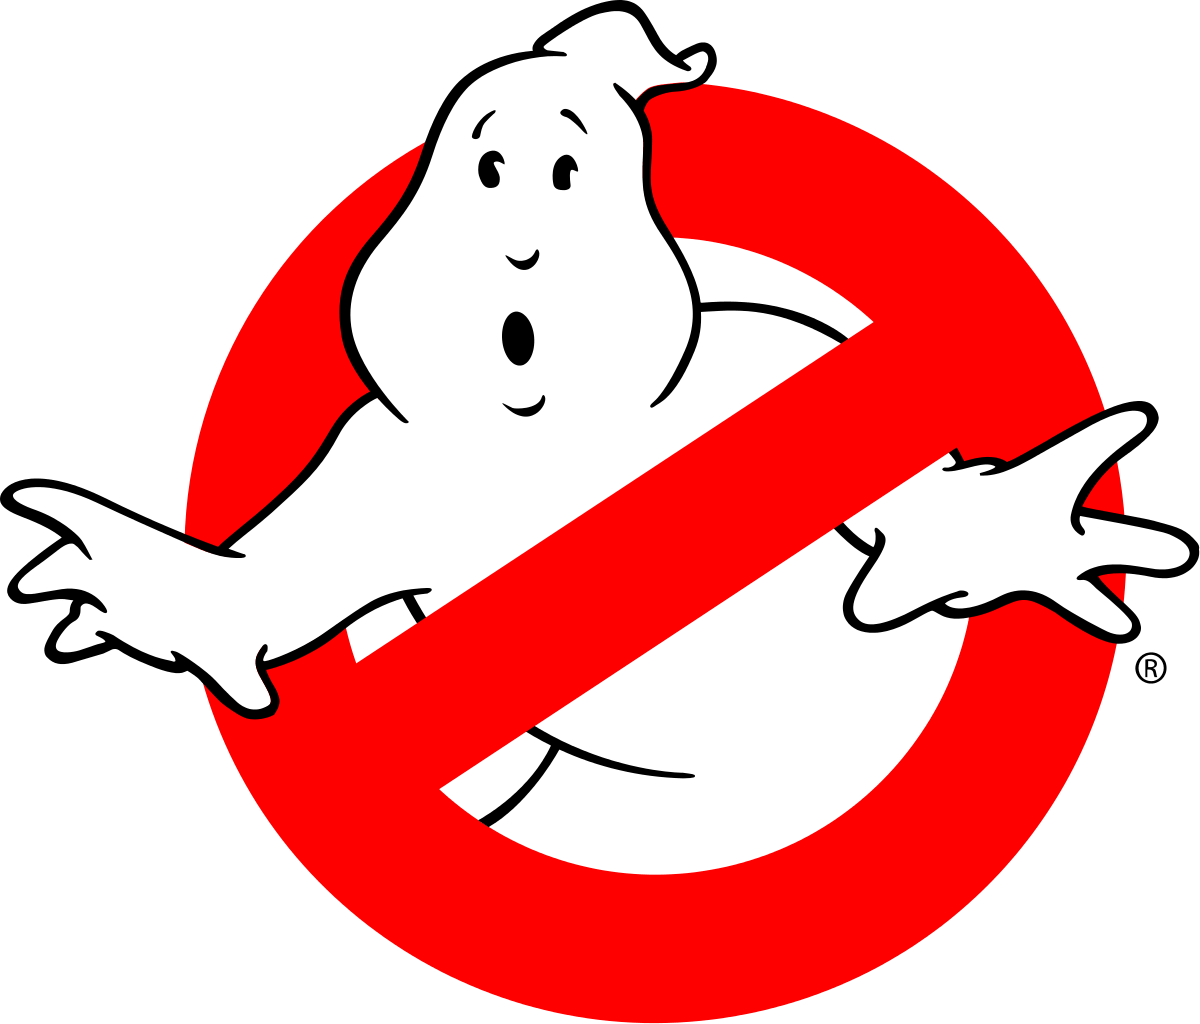 Ghost clipart logo. Busters text transparent png